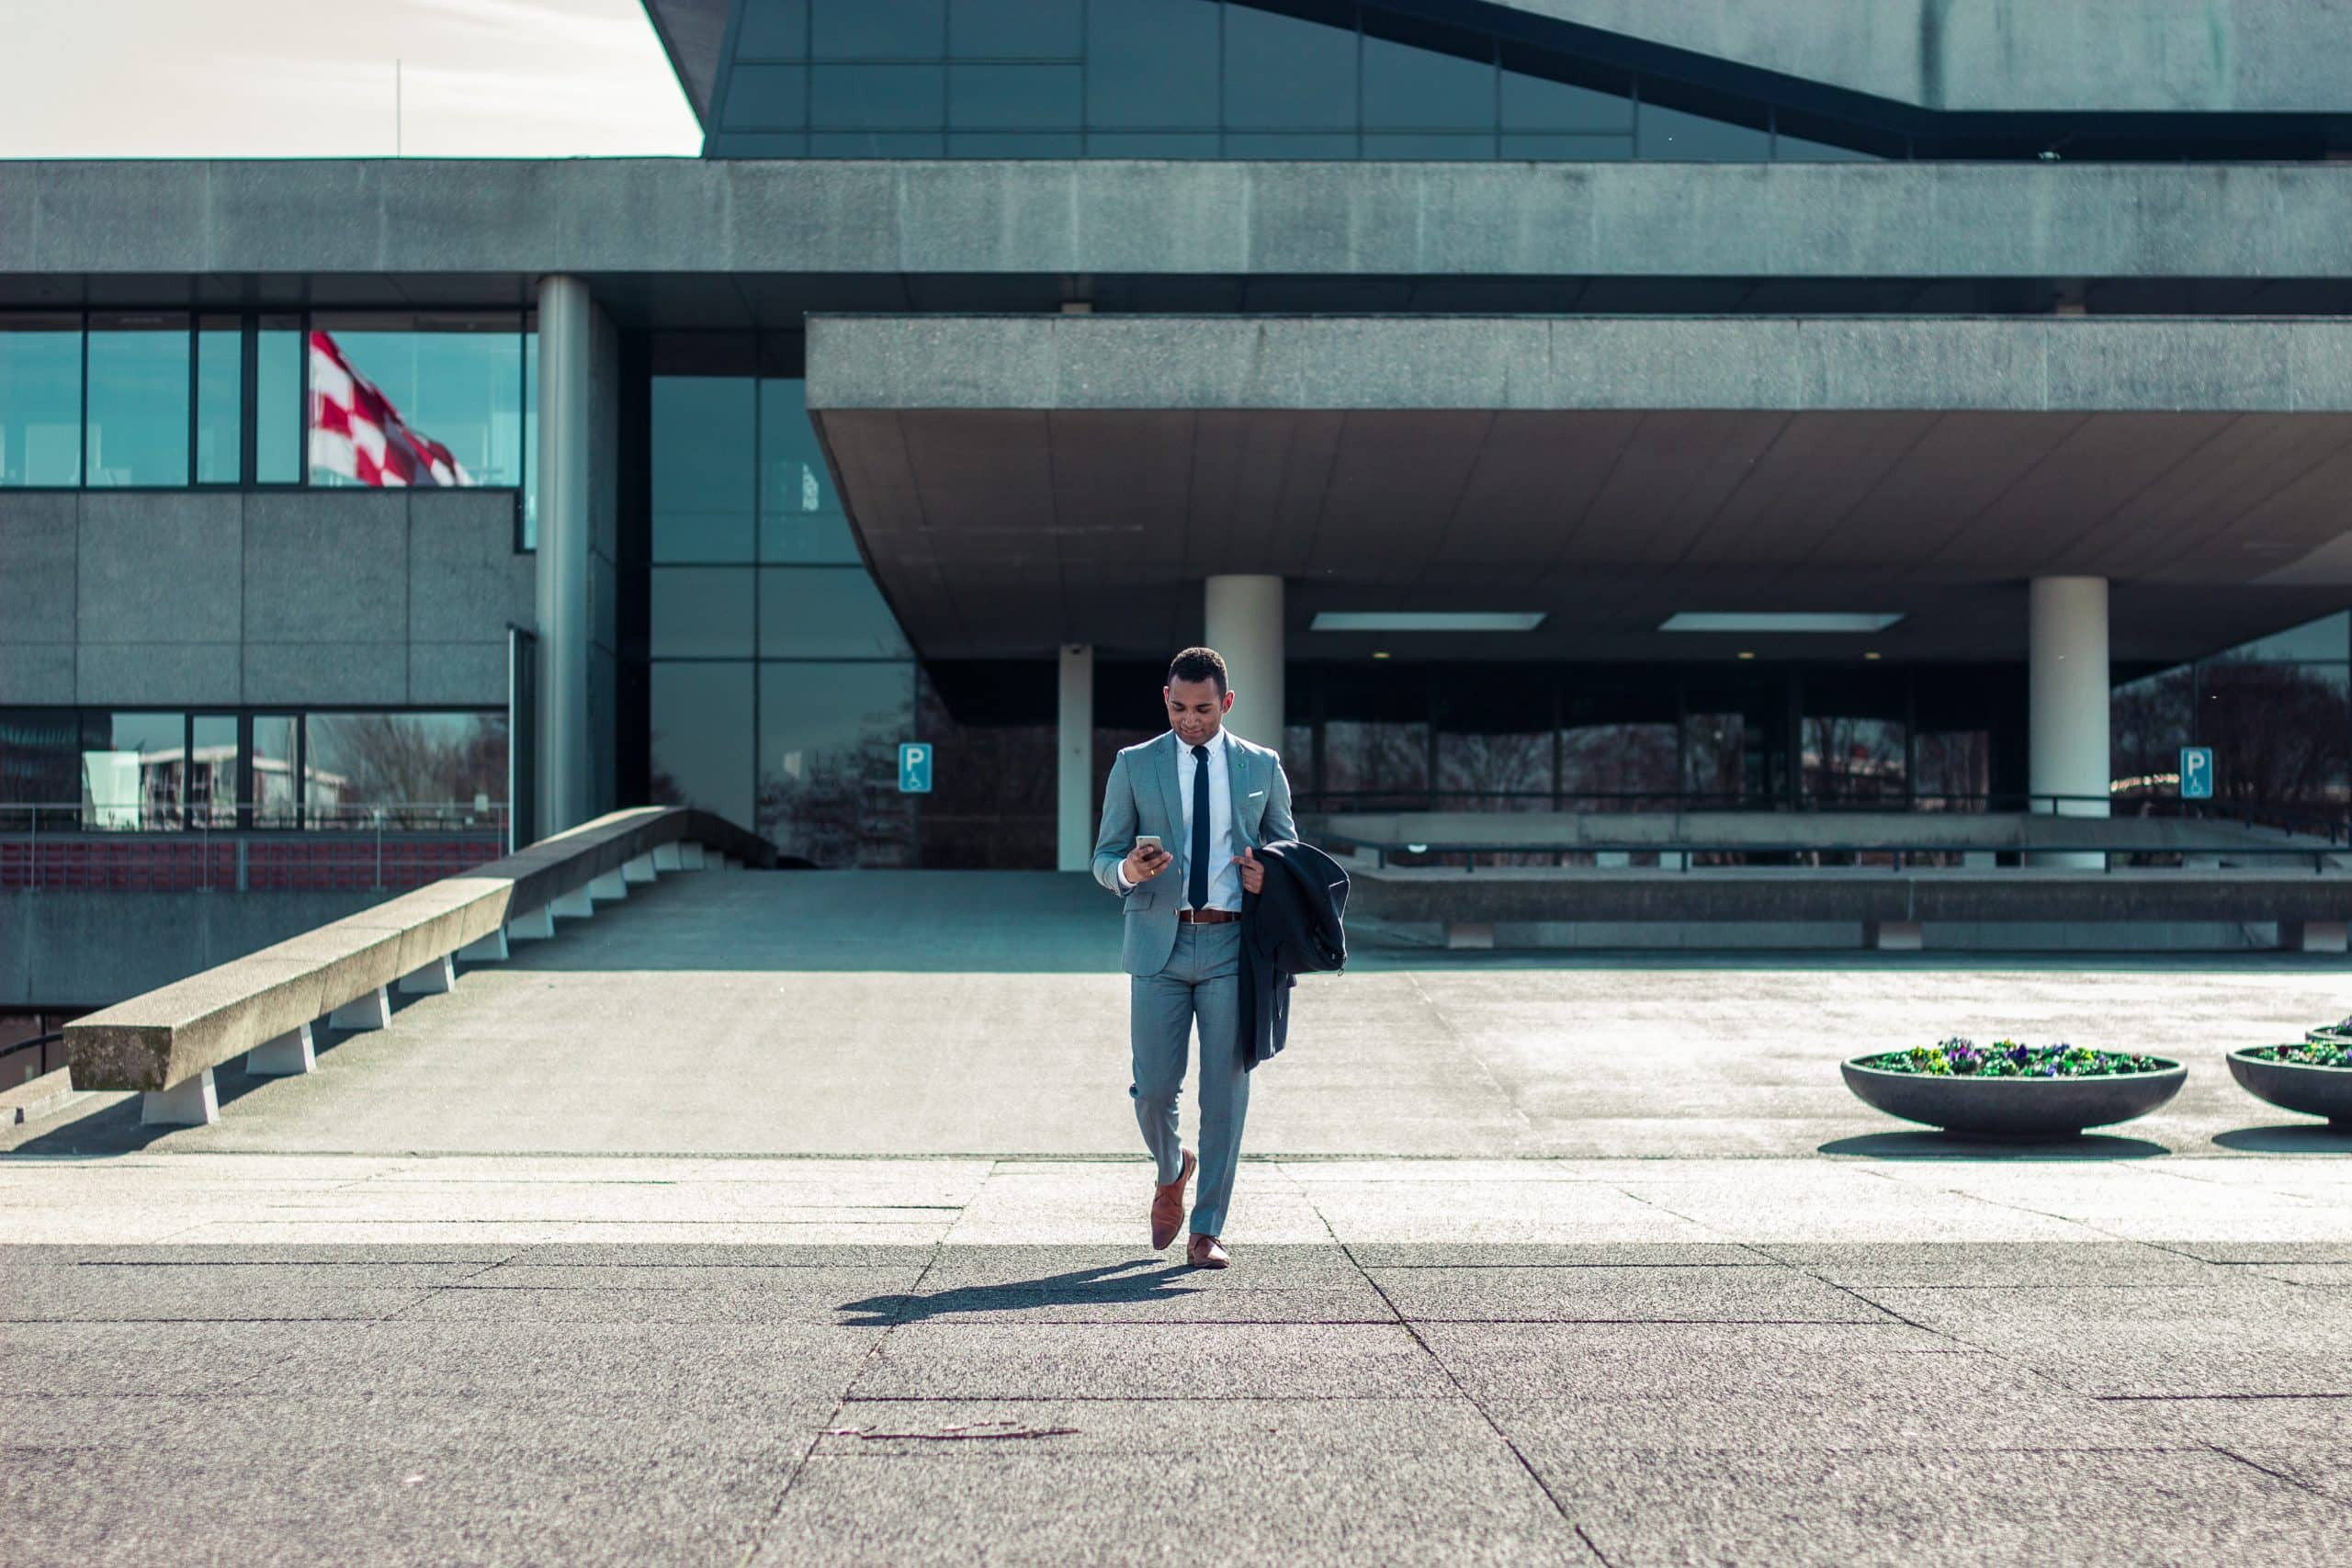 man walking in front of a building